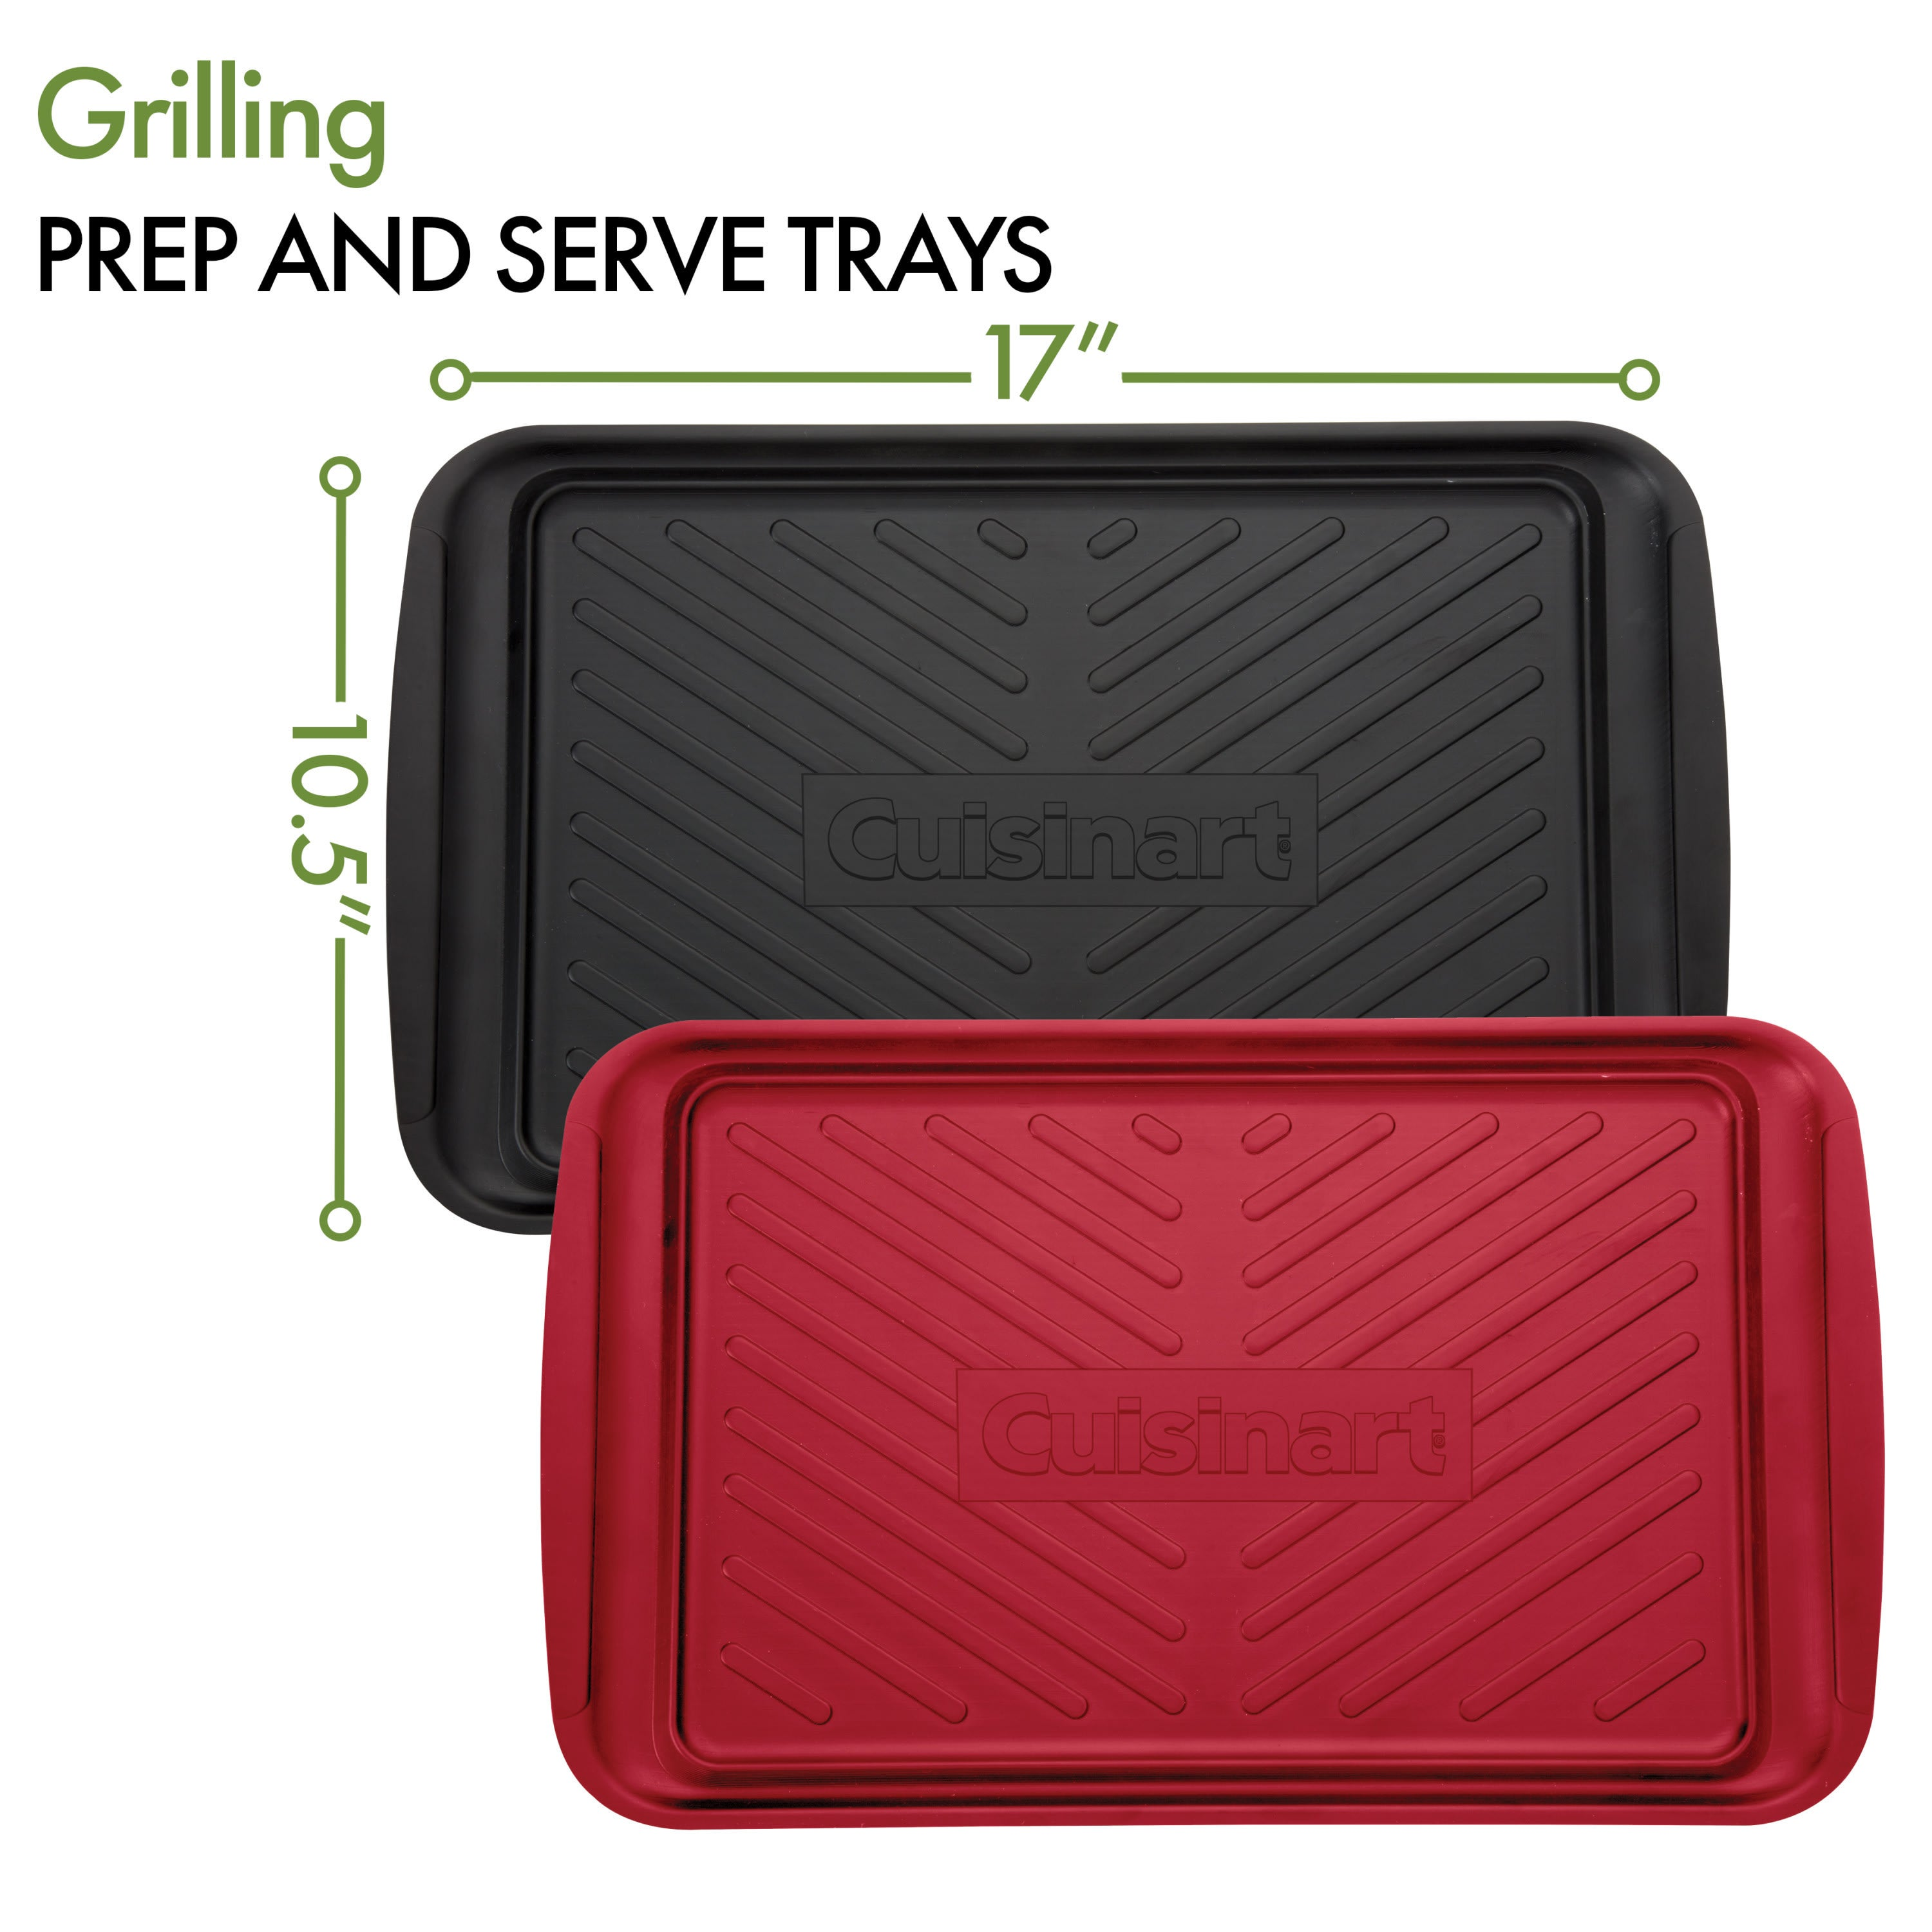 Cuisinart Grilling Prep and Serve Trays - dimensions